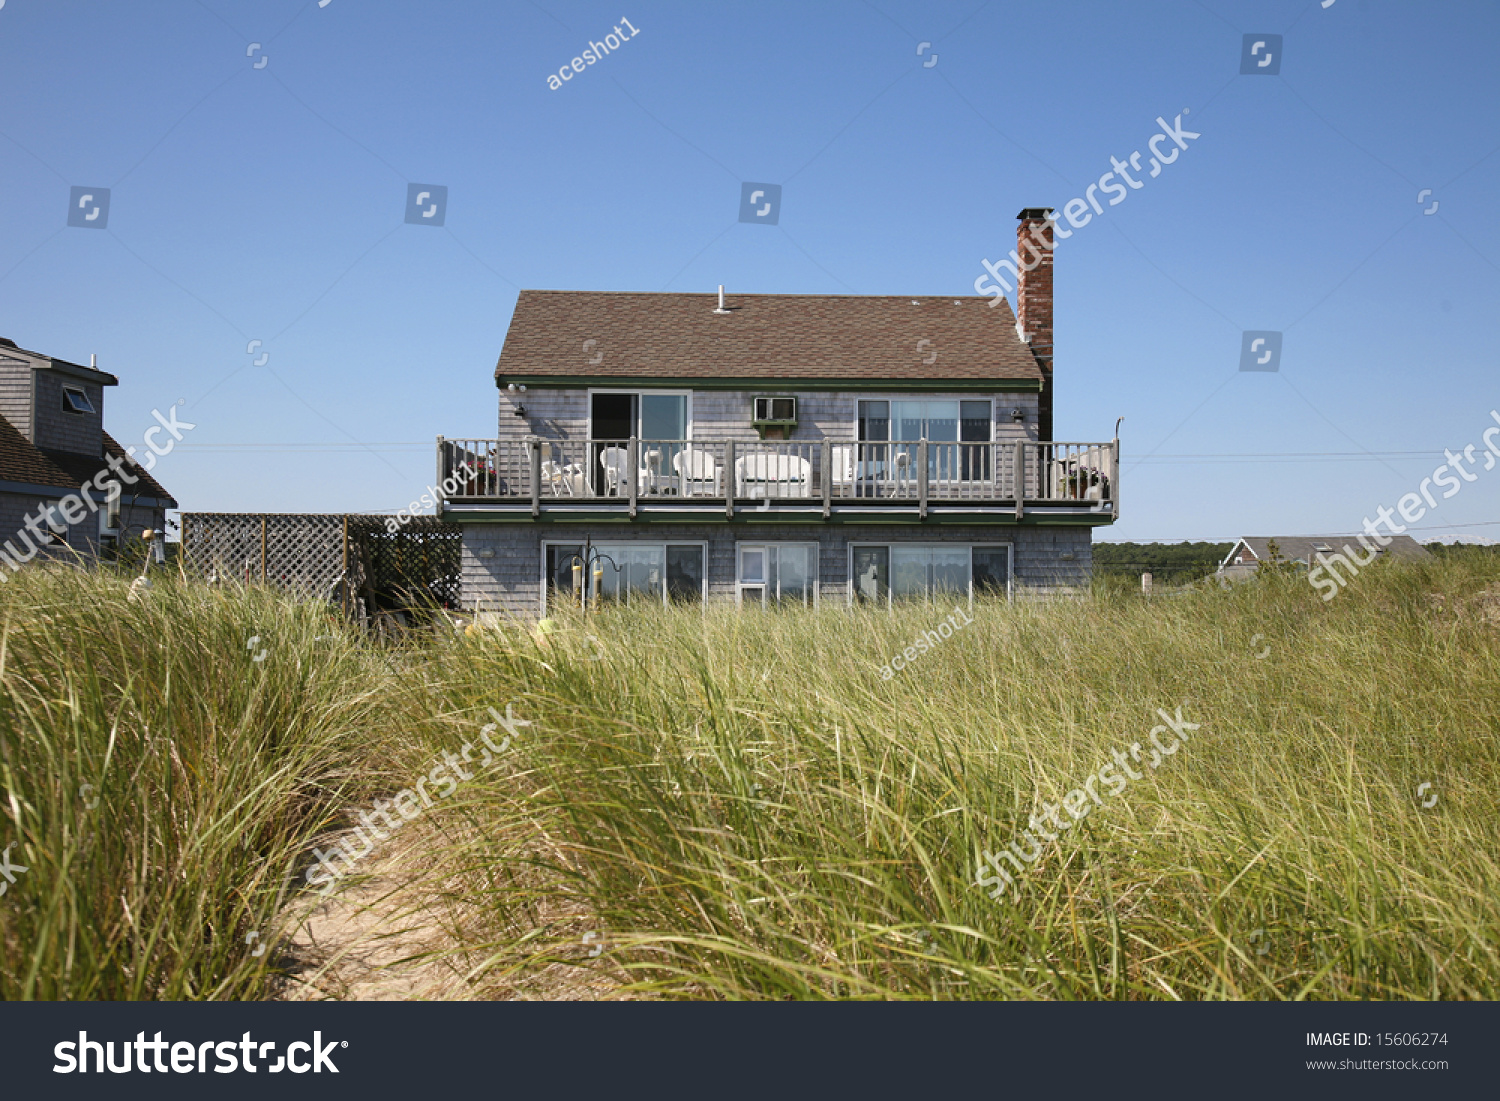 Cape cod beach house pictures